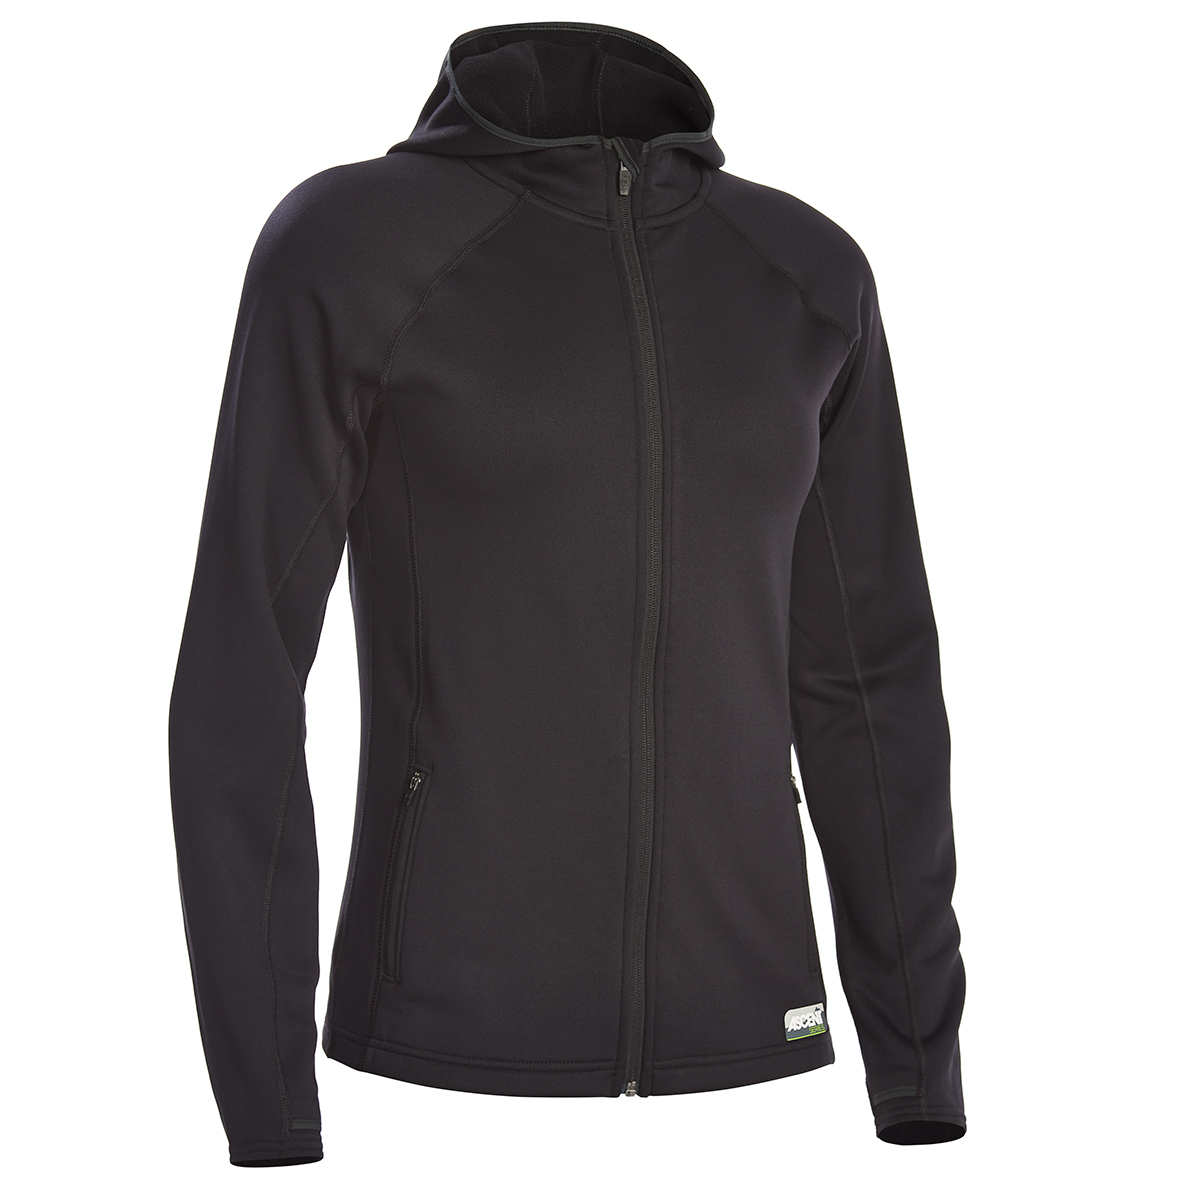 Emsa(R) Women's Equinox Power Stretch Hoodie - Black, M